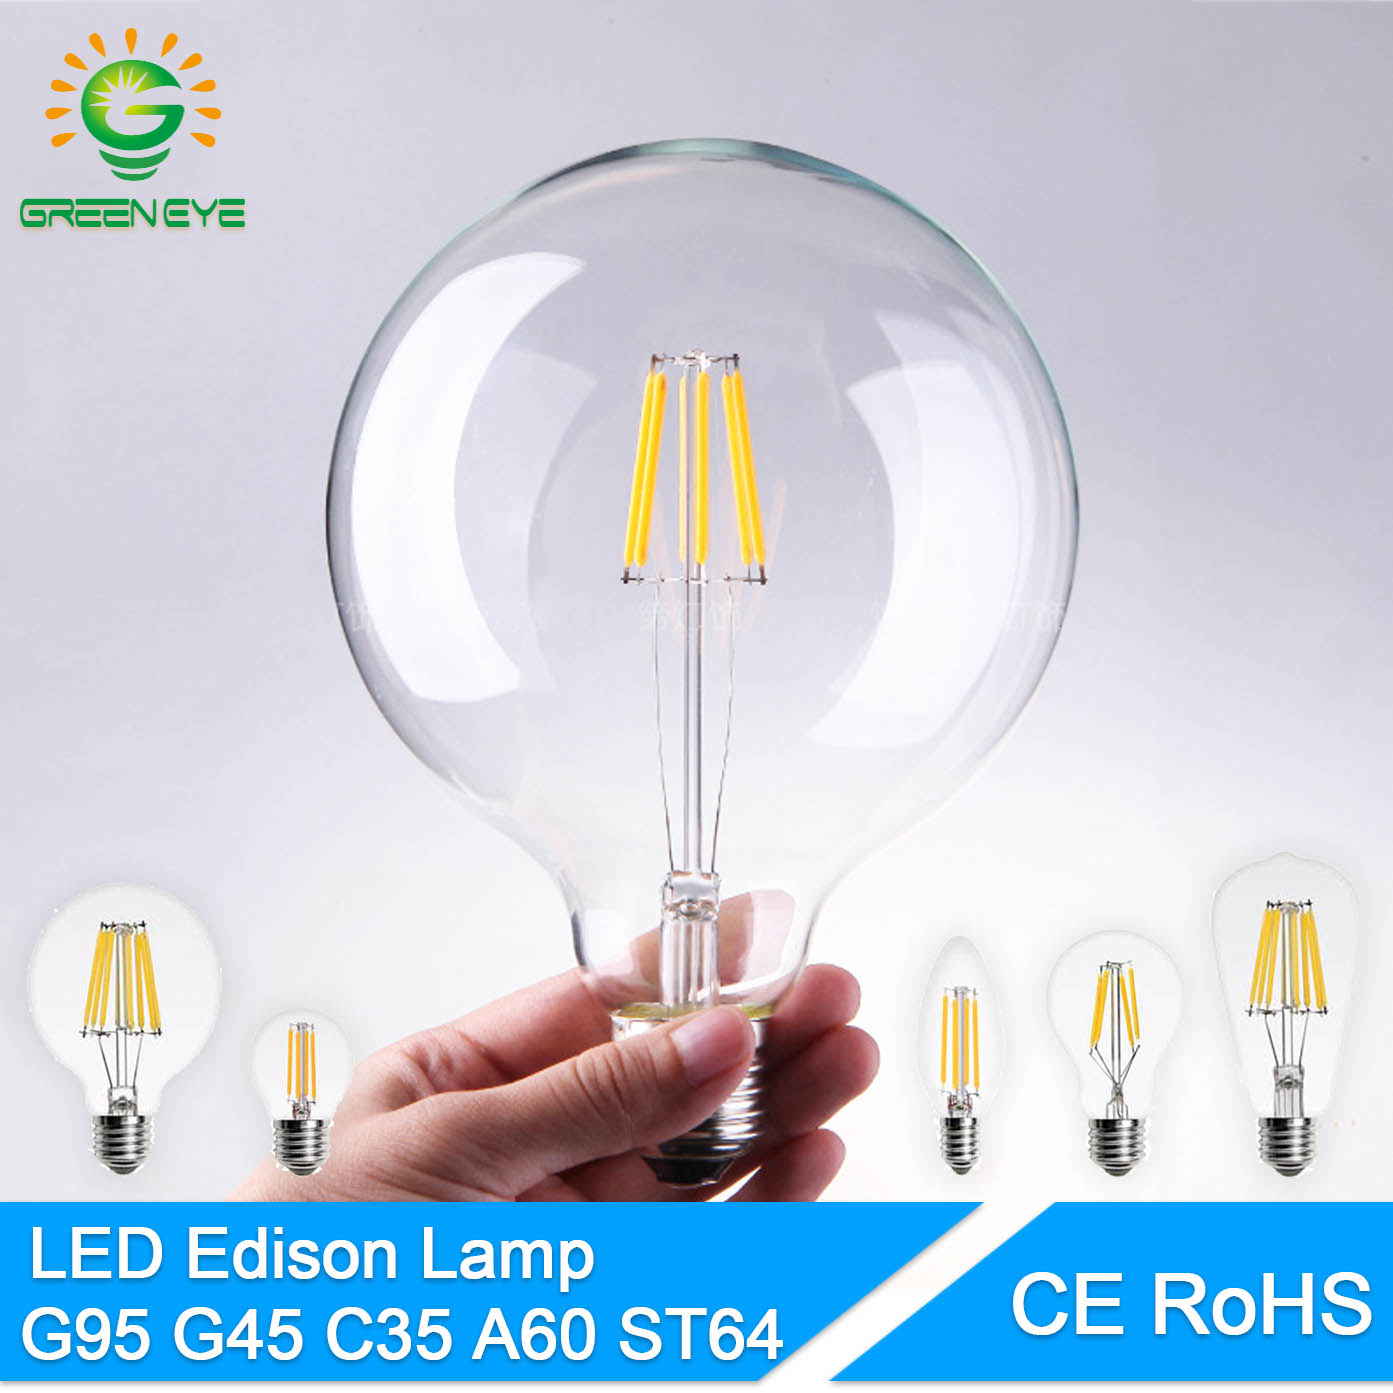 GreenEye High Bright E27 E14 LED Bulb Vintage Edison LED Lamp 220V Retro Glass LED Filament Bulb Light Candle Spotlight Ampoule retro lamp st64 vintage led edison e27 led bulb lamp 110 v 220 v 4 w filament glass lamp